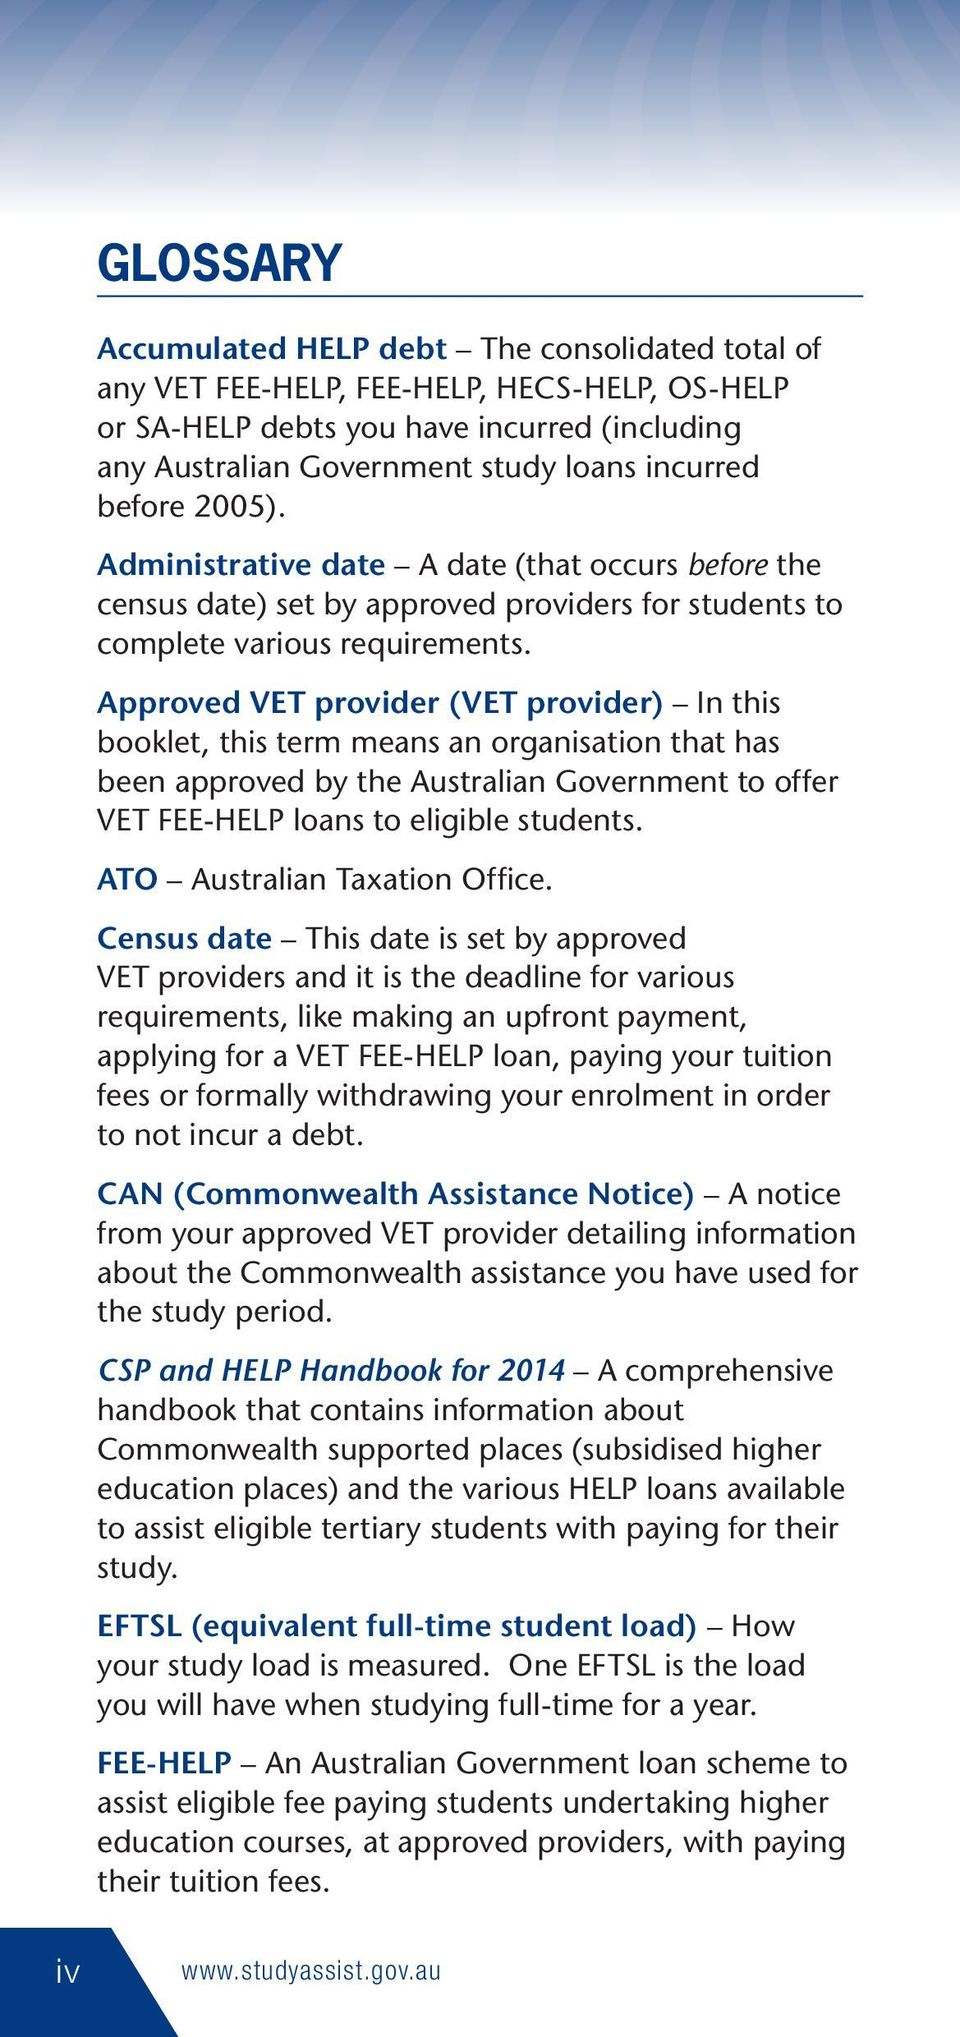 Approved VET provider (VET provider) In this booklet, this term means an organisation that has been approved by the Australian Government to offer VET FEE-HELP loans to eligible students.